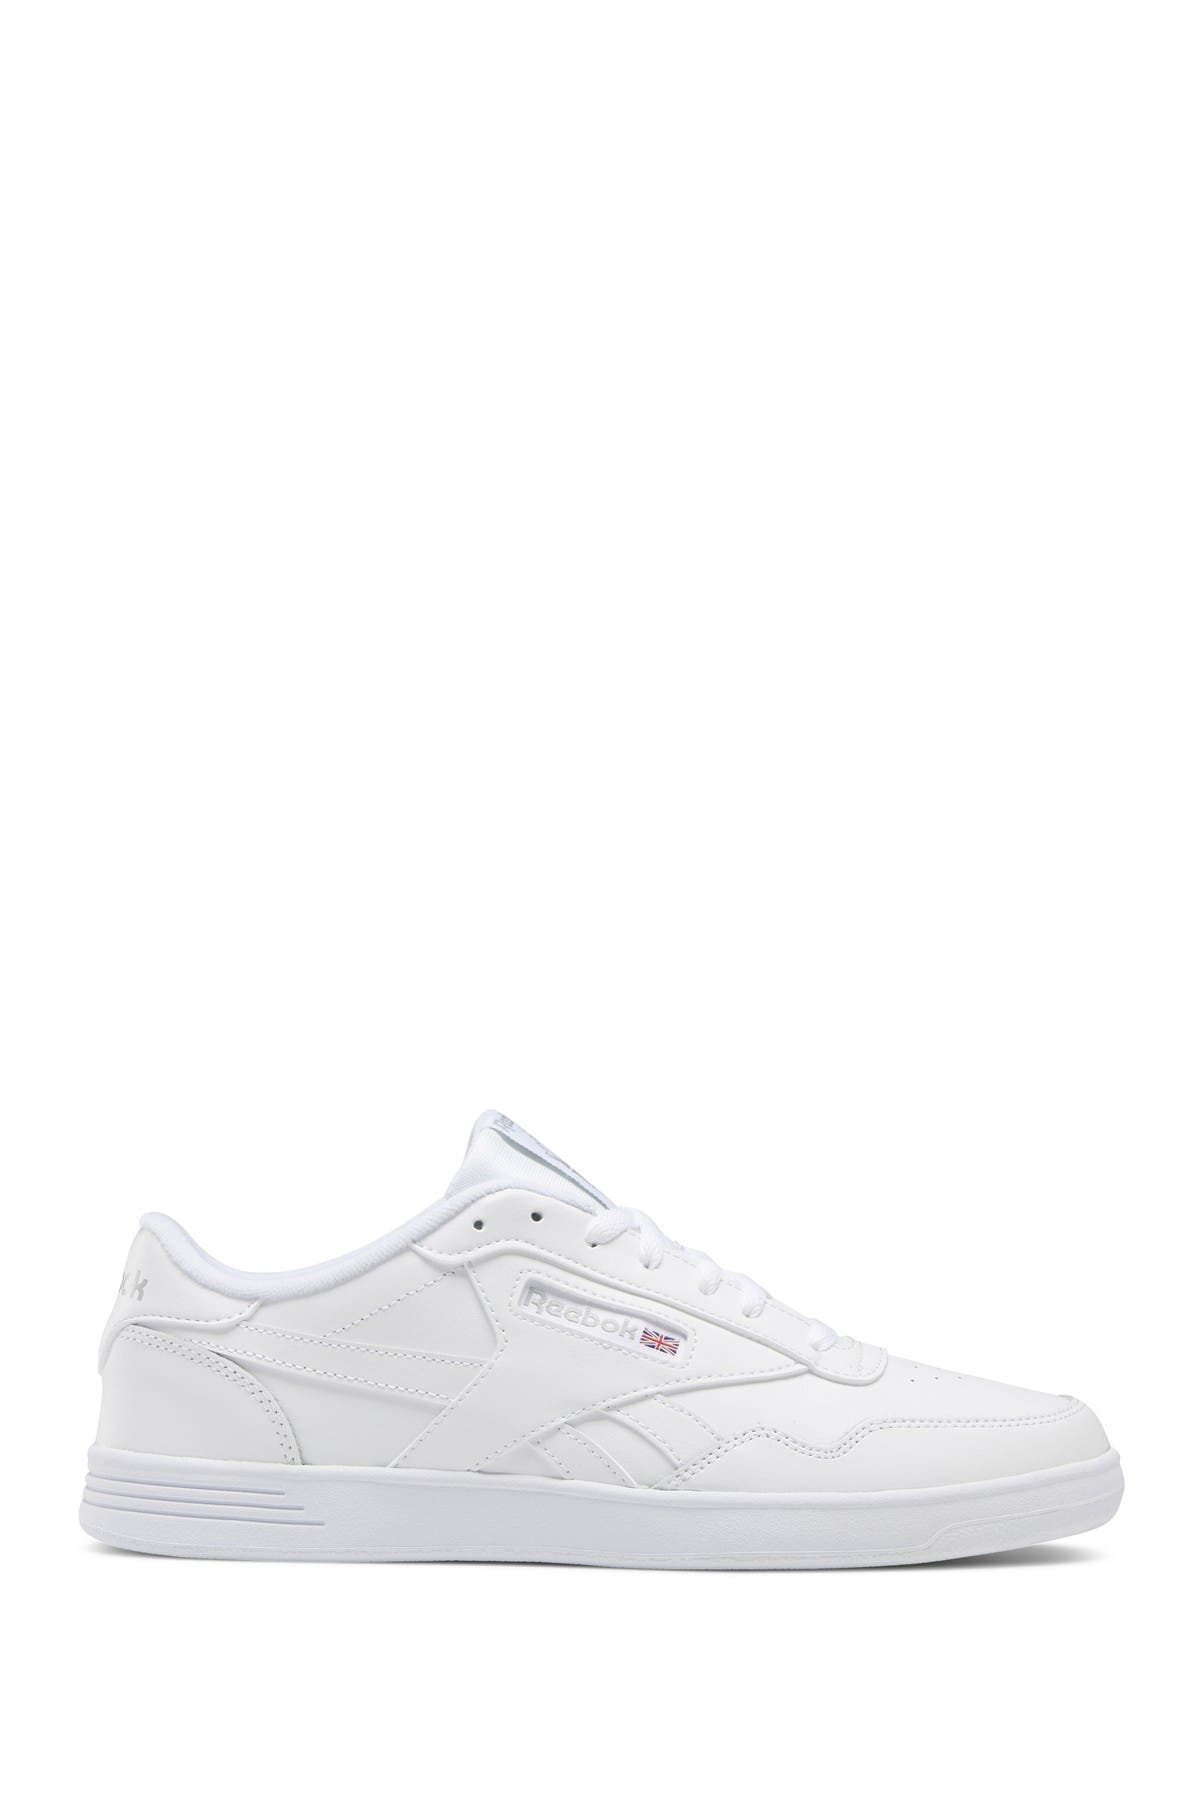 Image of Reebok Club MEMT Shoe